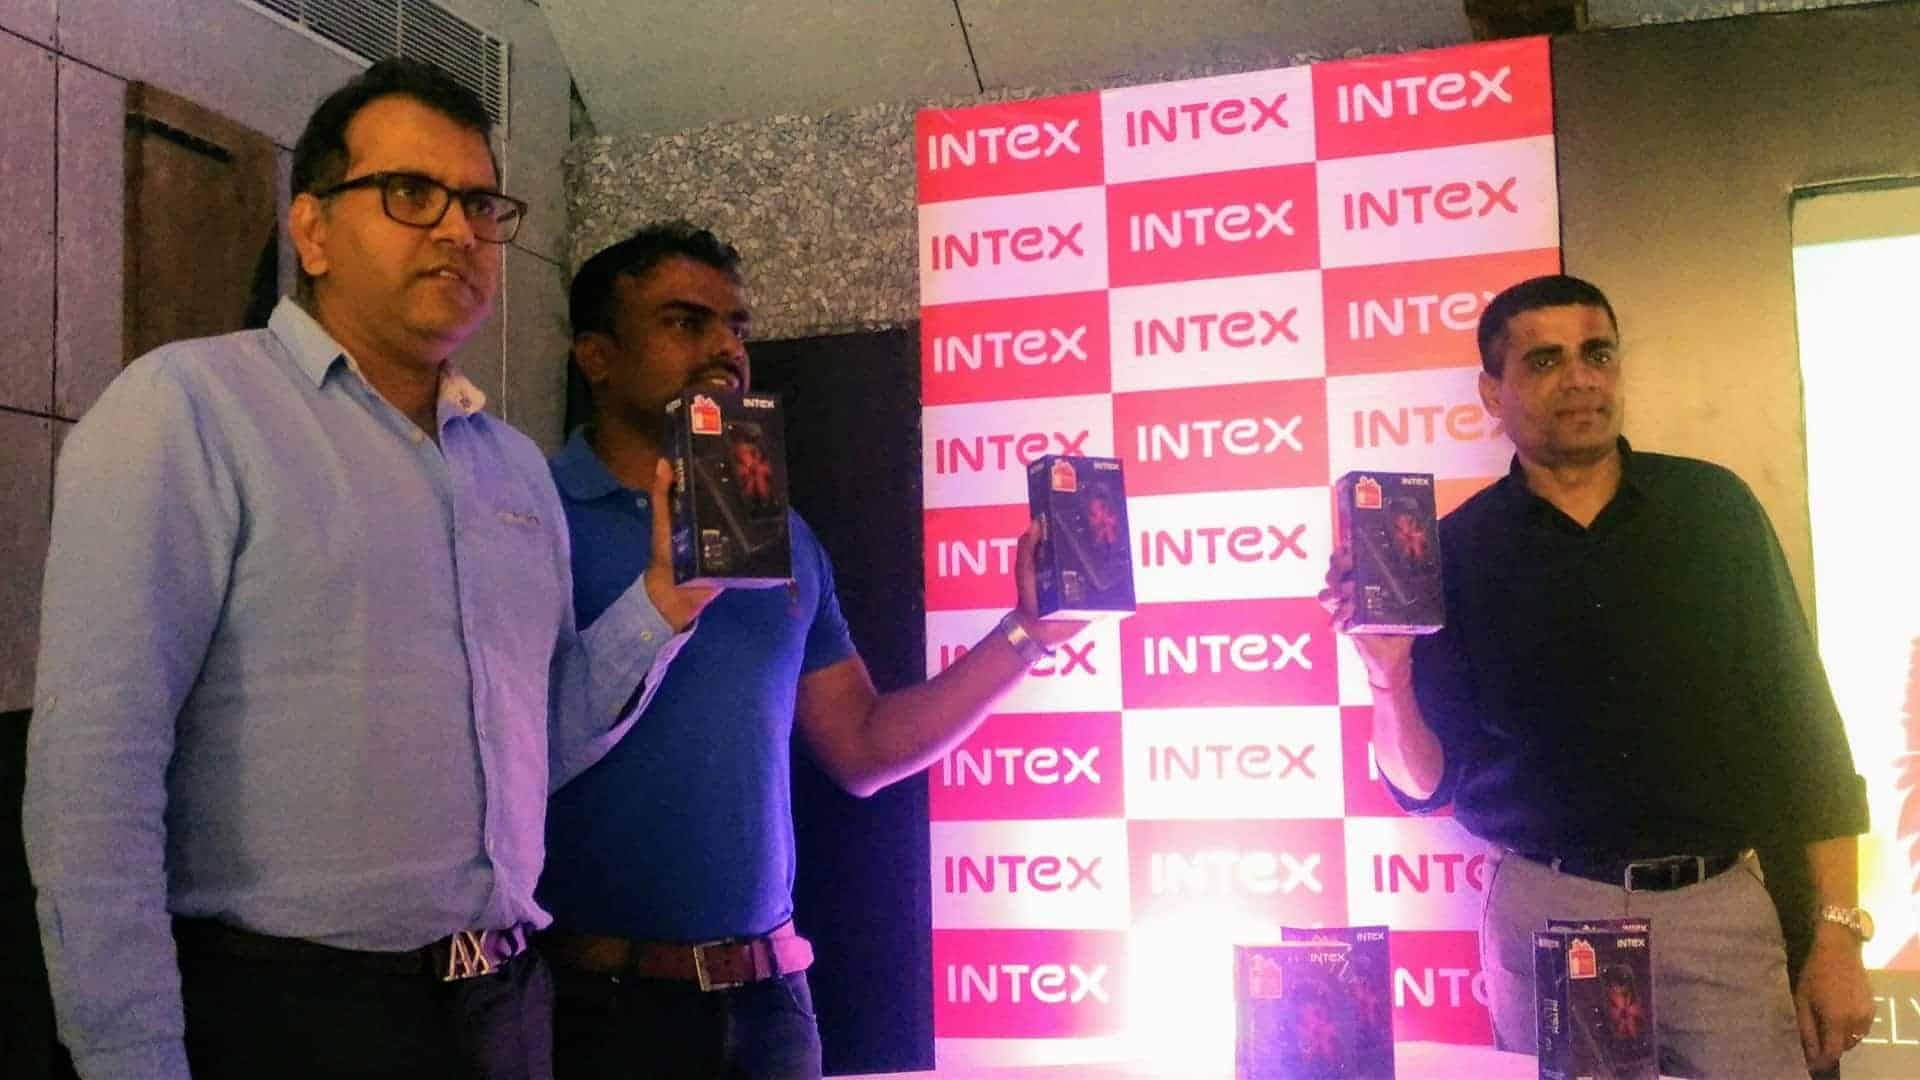 Intex Elyt E6 Launched In India At Rs. 6,999 [Update - Price Cut of 1000] - 2